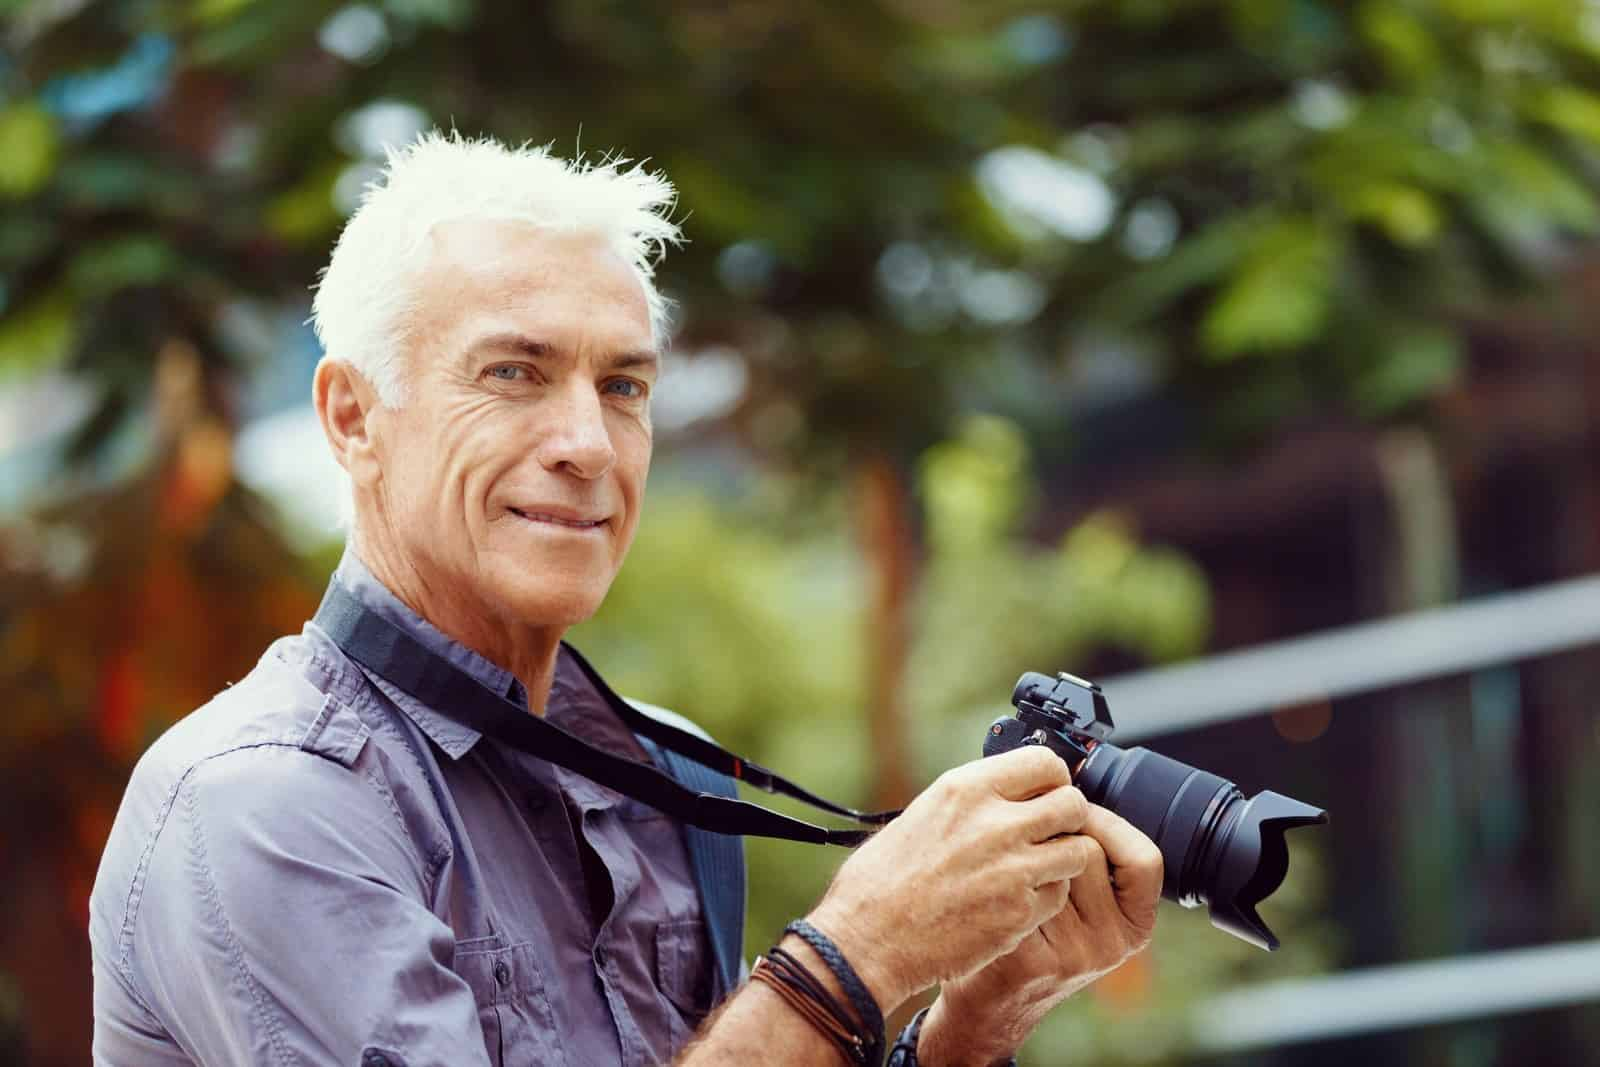 Retirement savings senior with camera